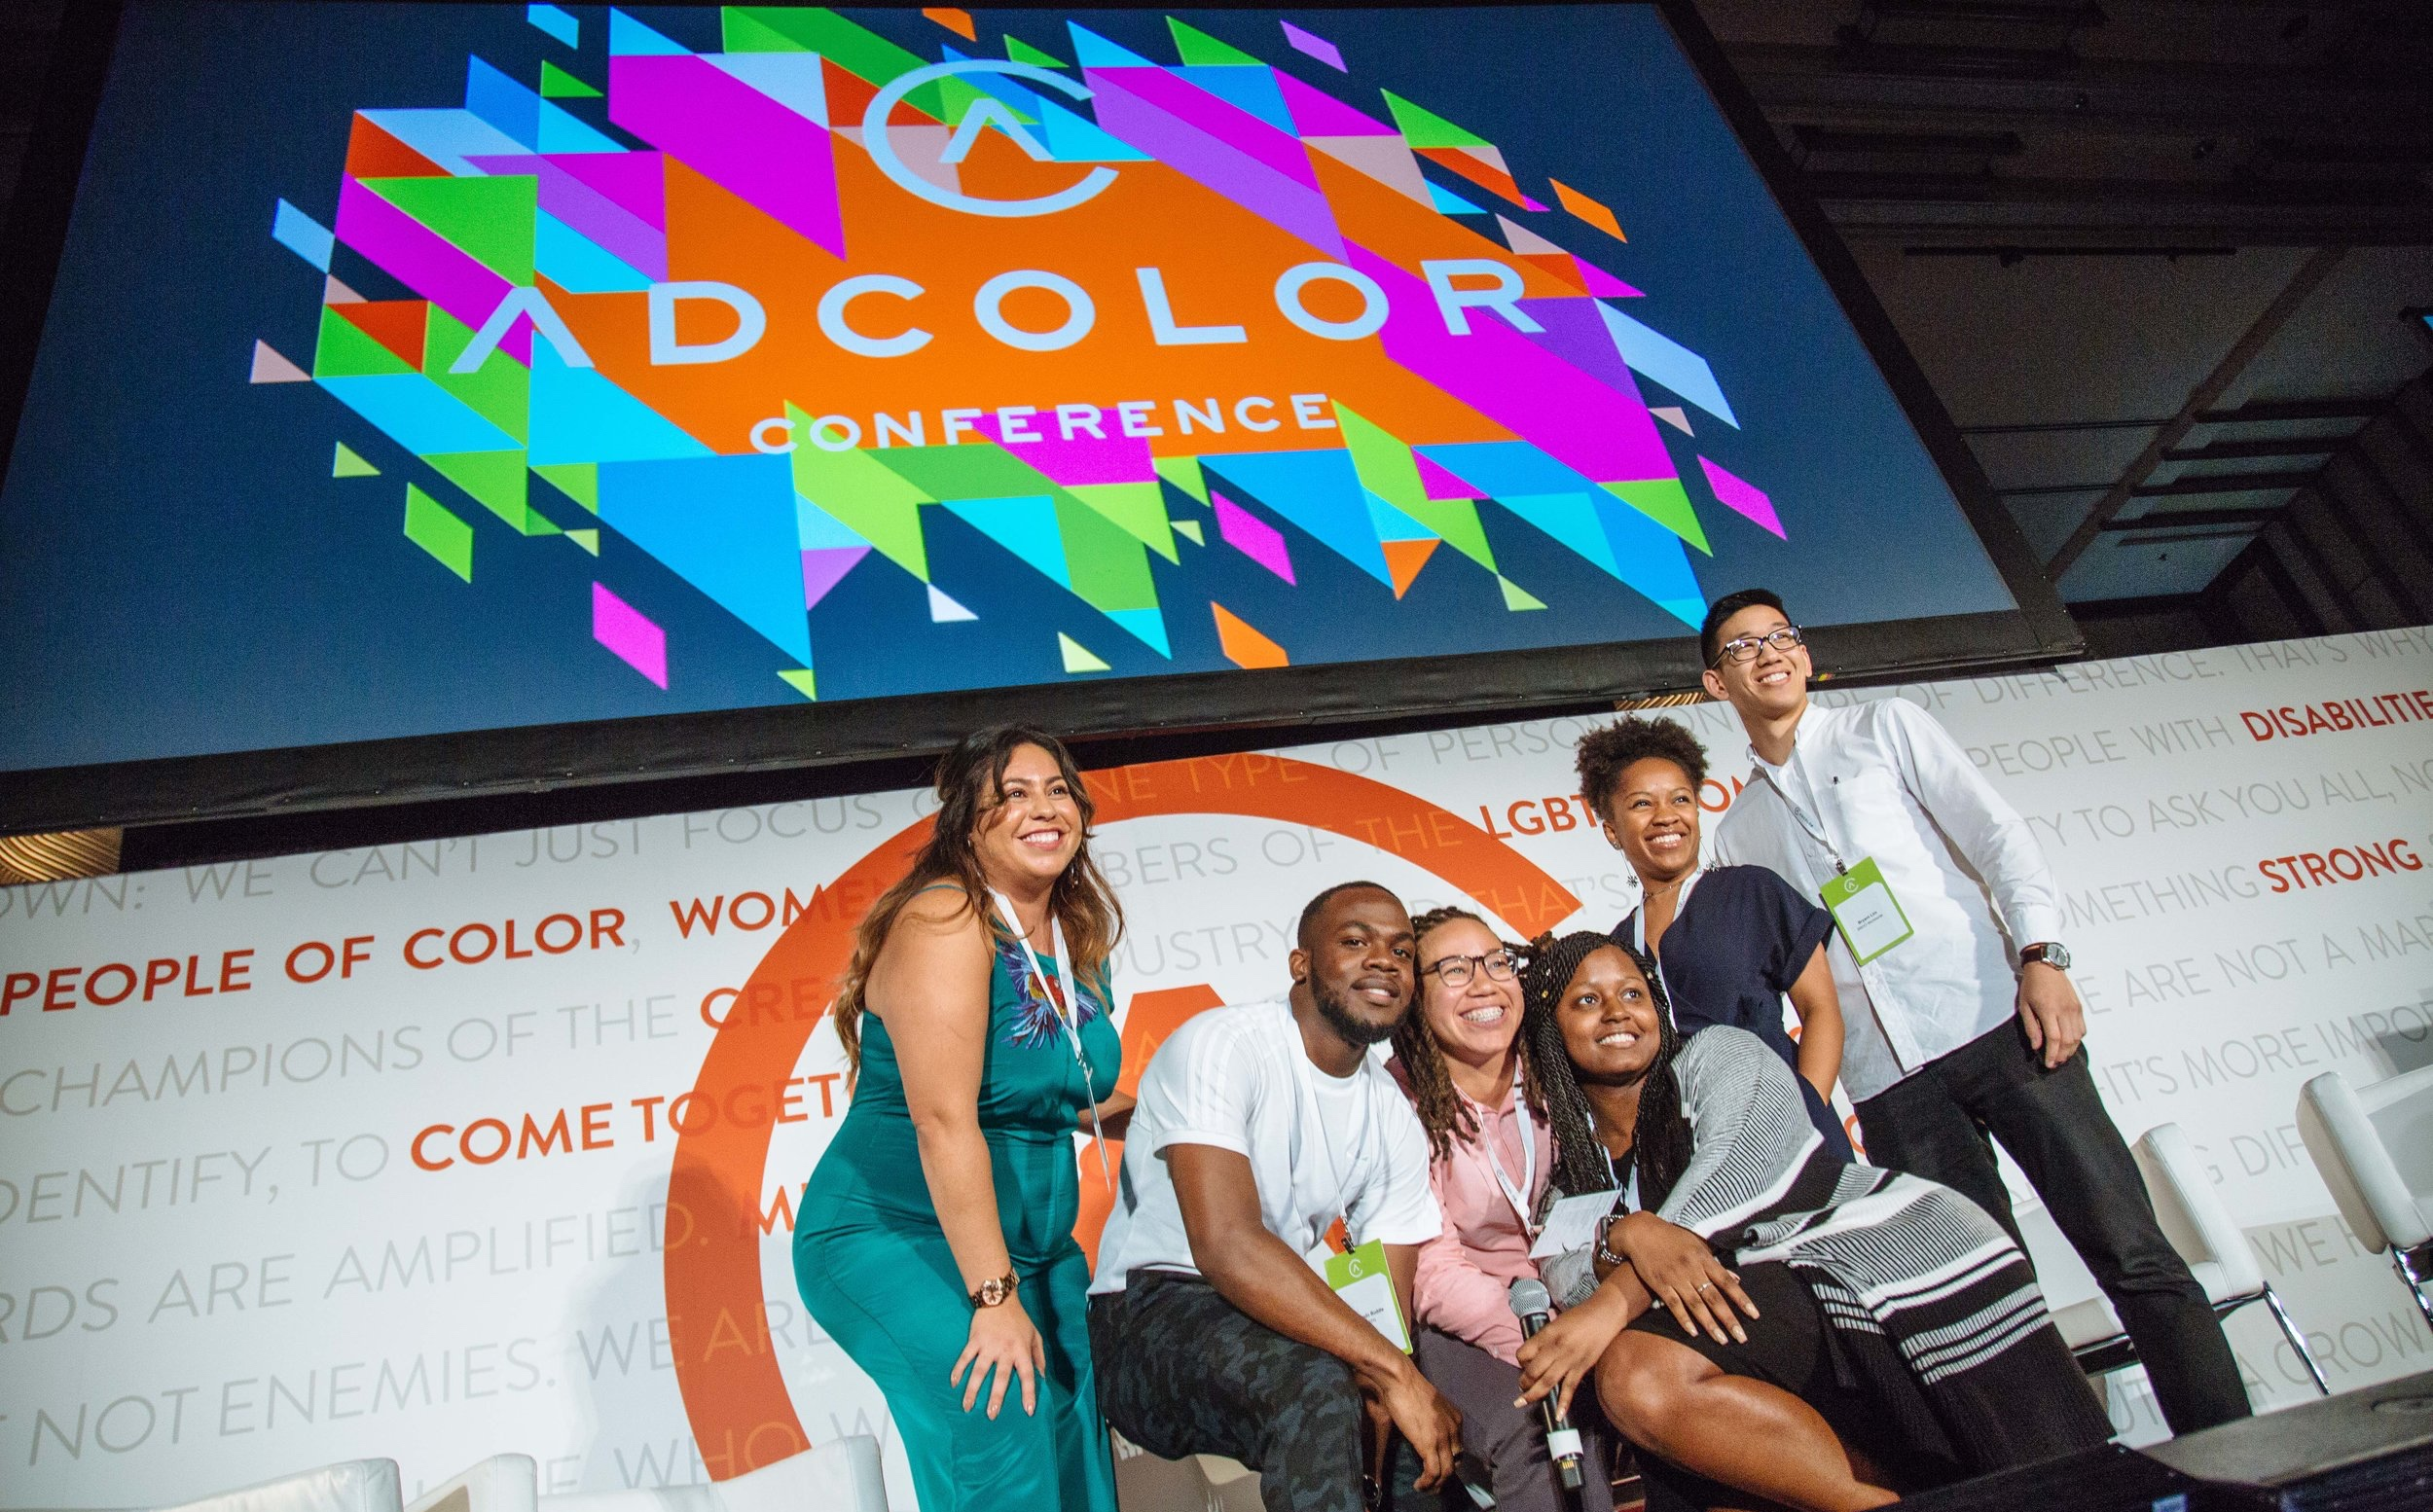 ADCOLOR 2017 Future + Hackathon Winner - Learn more about ADCOLOR here.ADCOLOR 2017 Conference + Awards recap here.